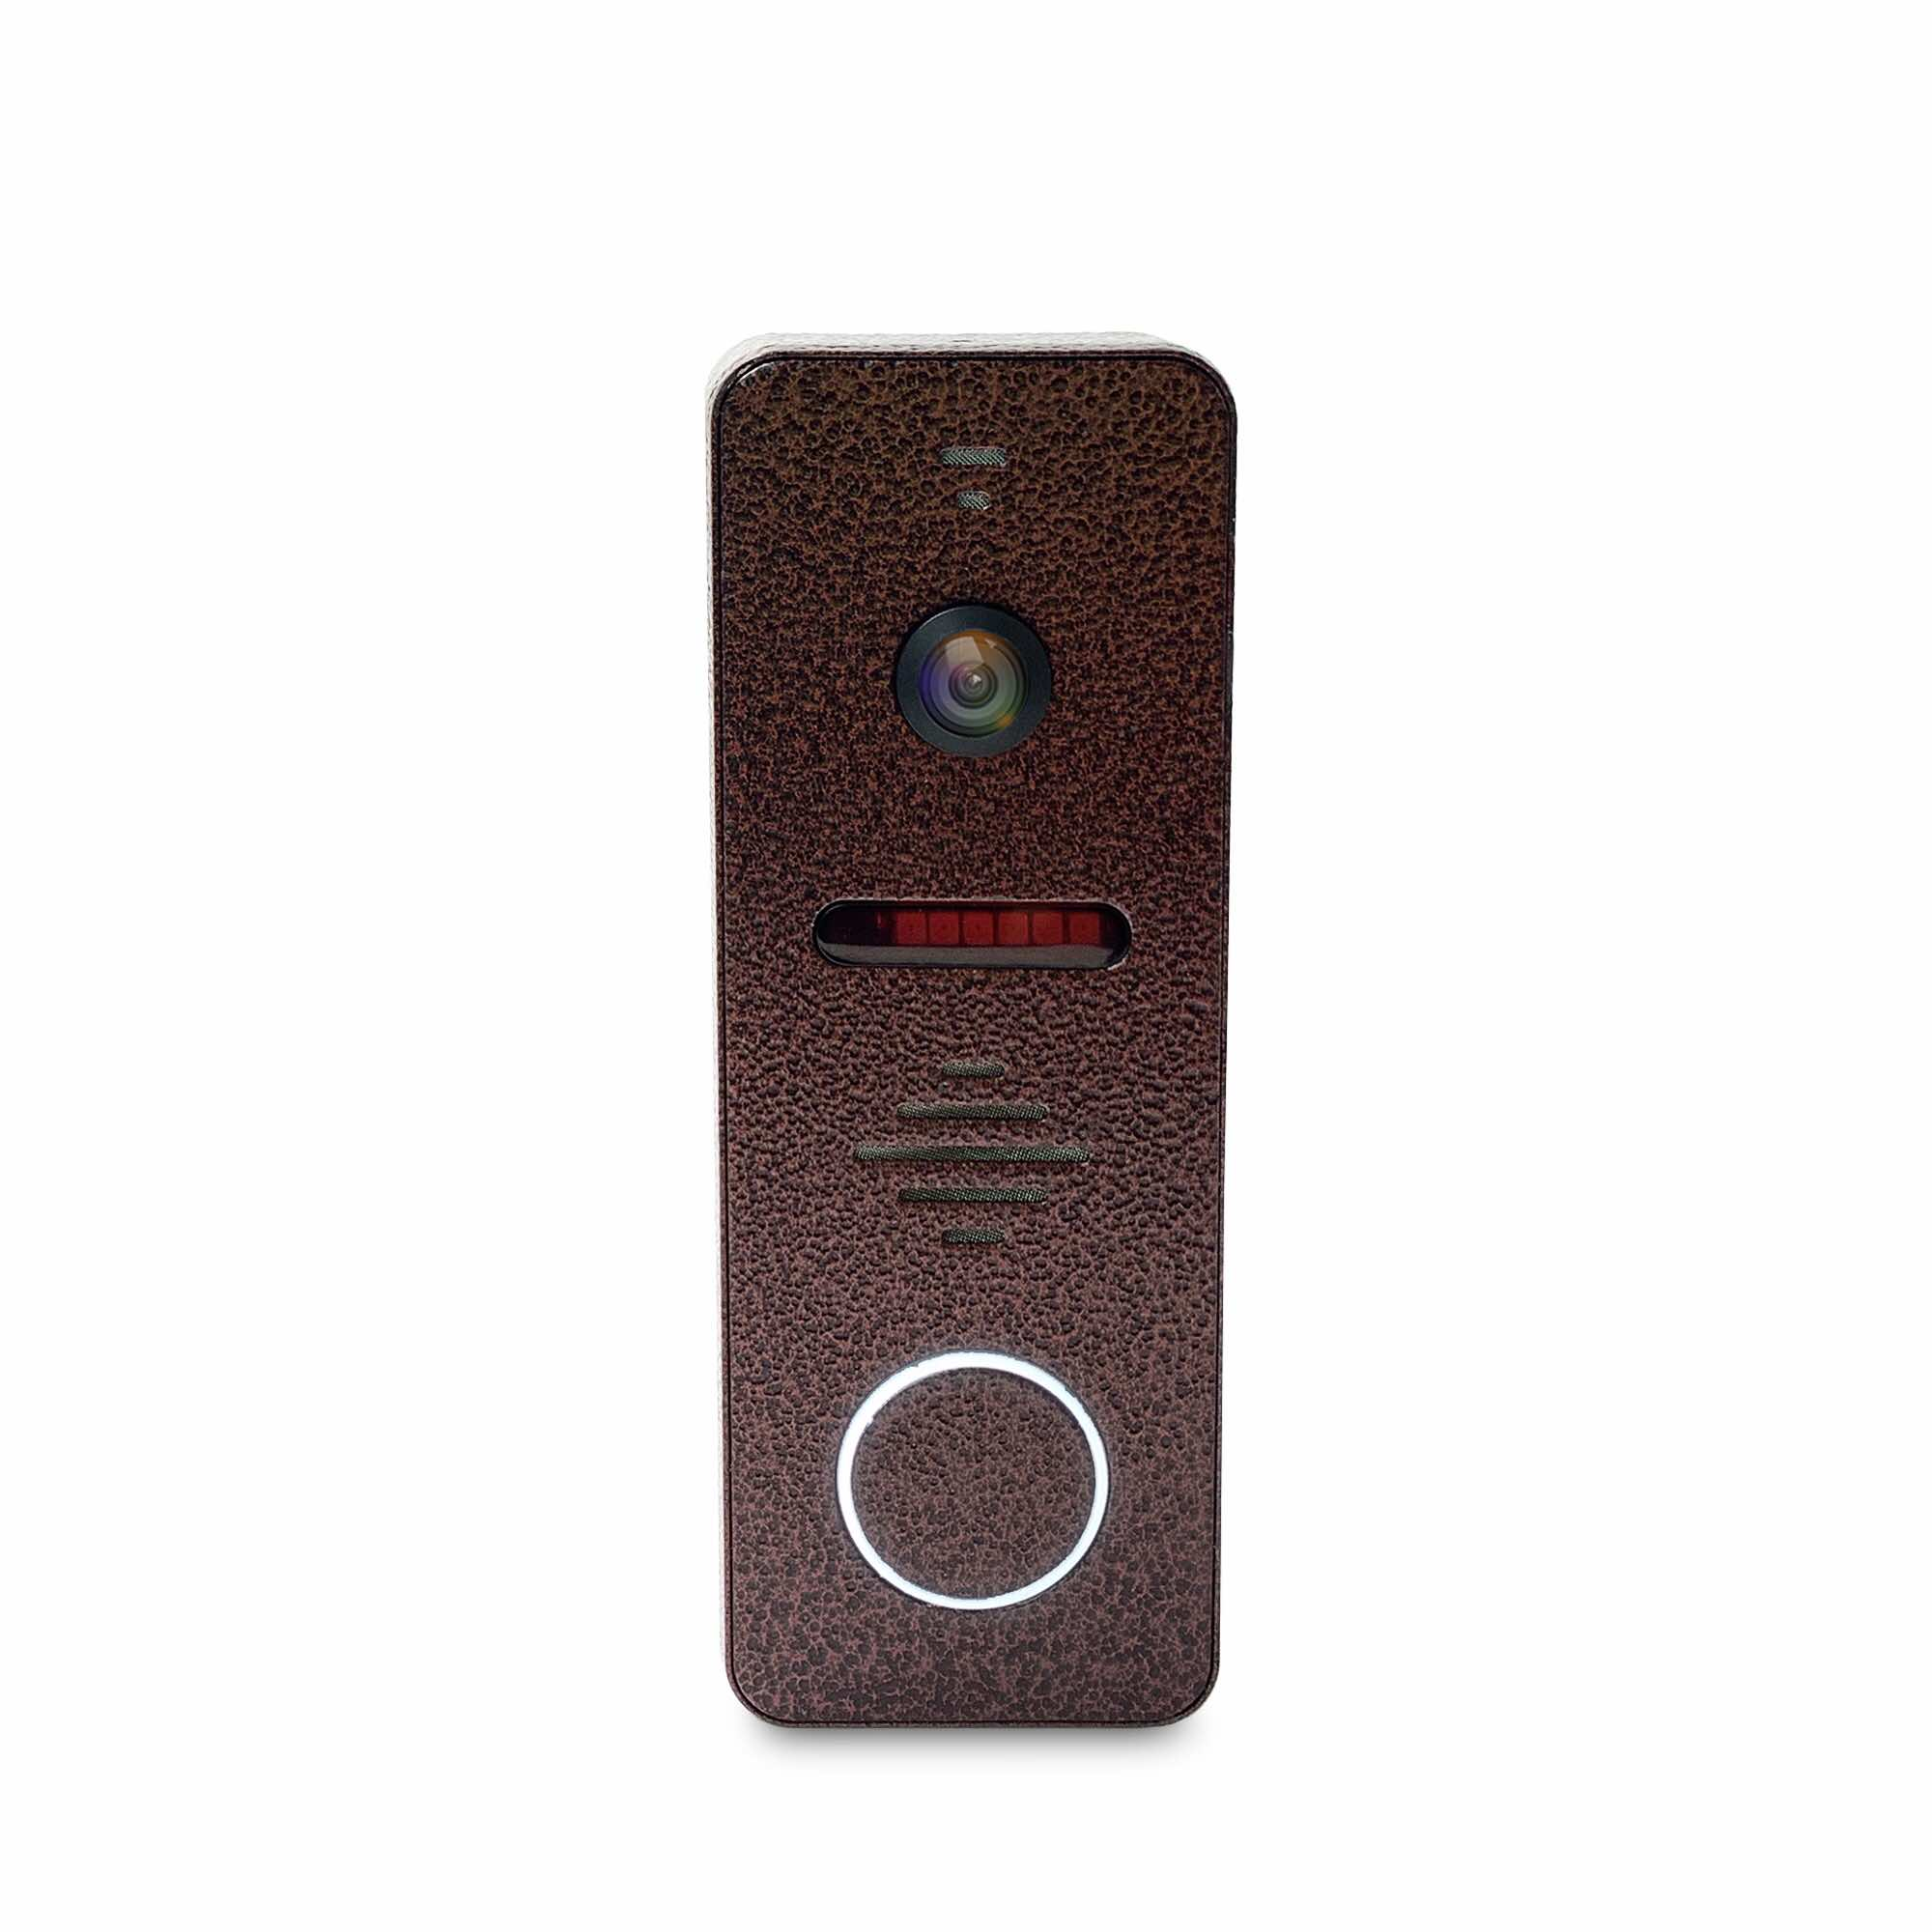 Dragonsview 7 inch Multiple System Wifi Wireless  Video Door Phone Doorbell Camera Access Control  Call Transfer Record Motion enlarge